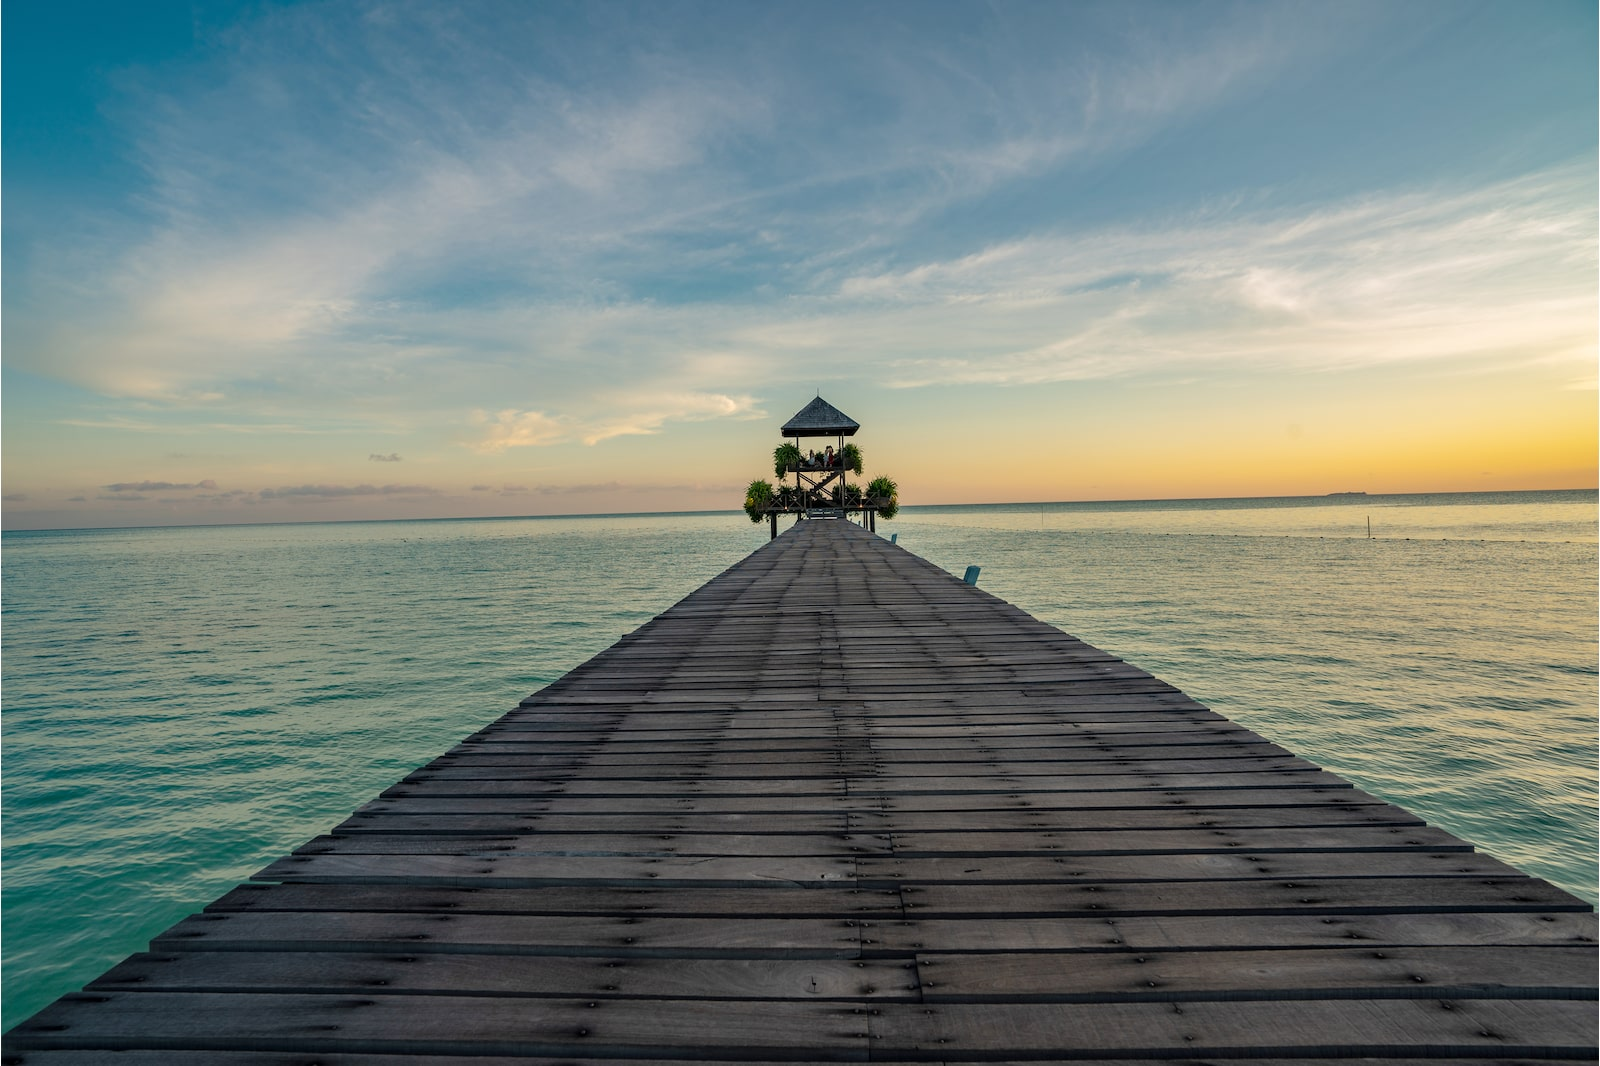 Sunset frontal view of bridge by the sea in Pulau Sipadan